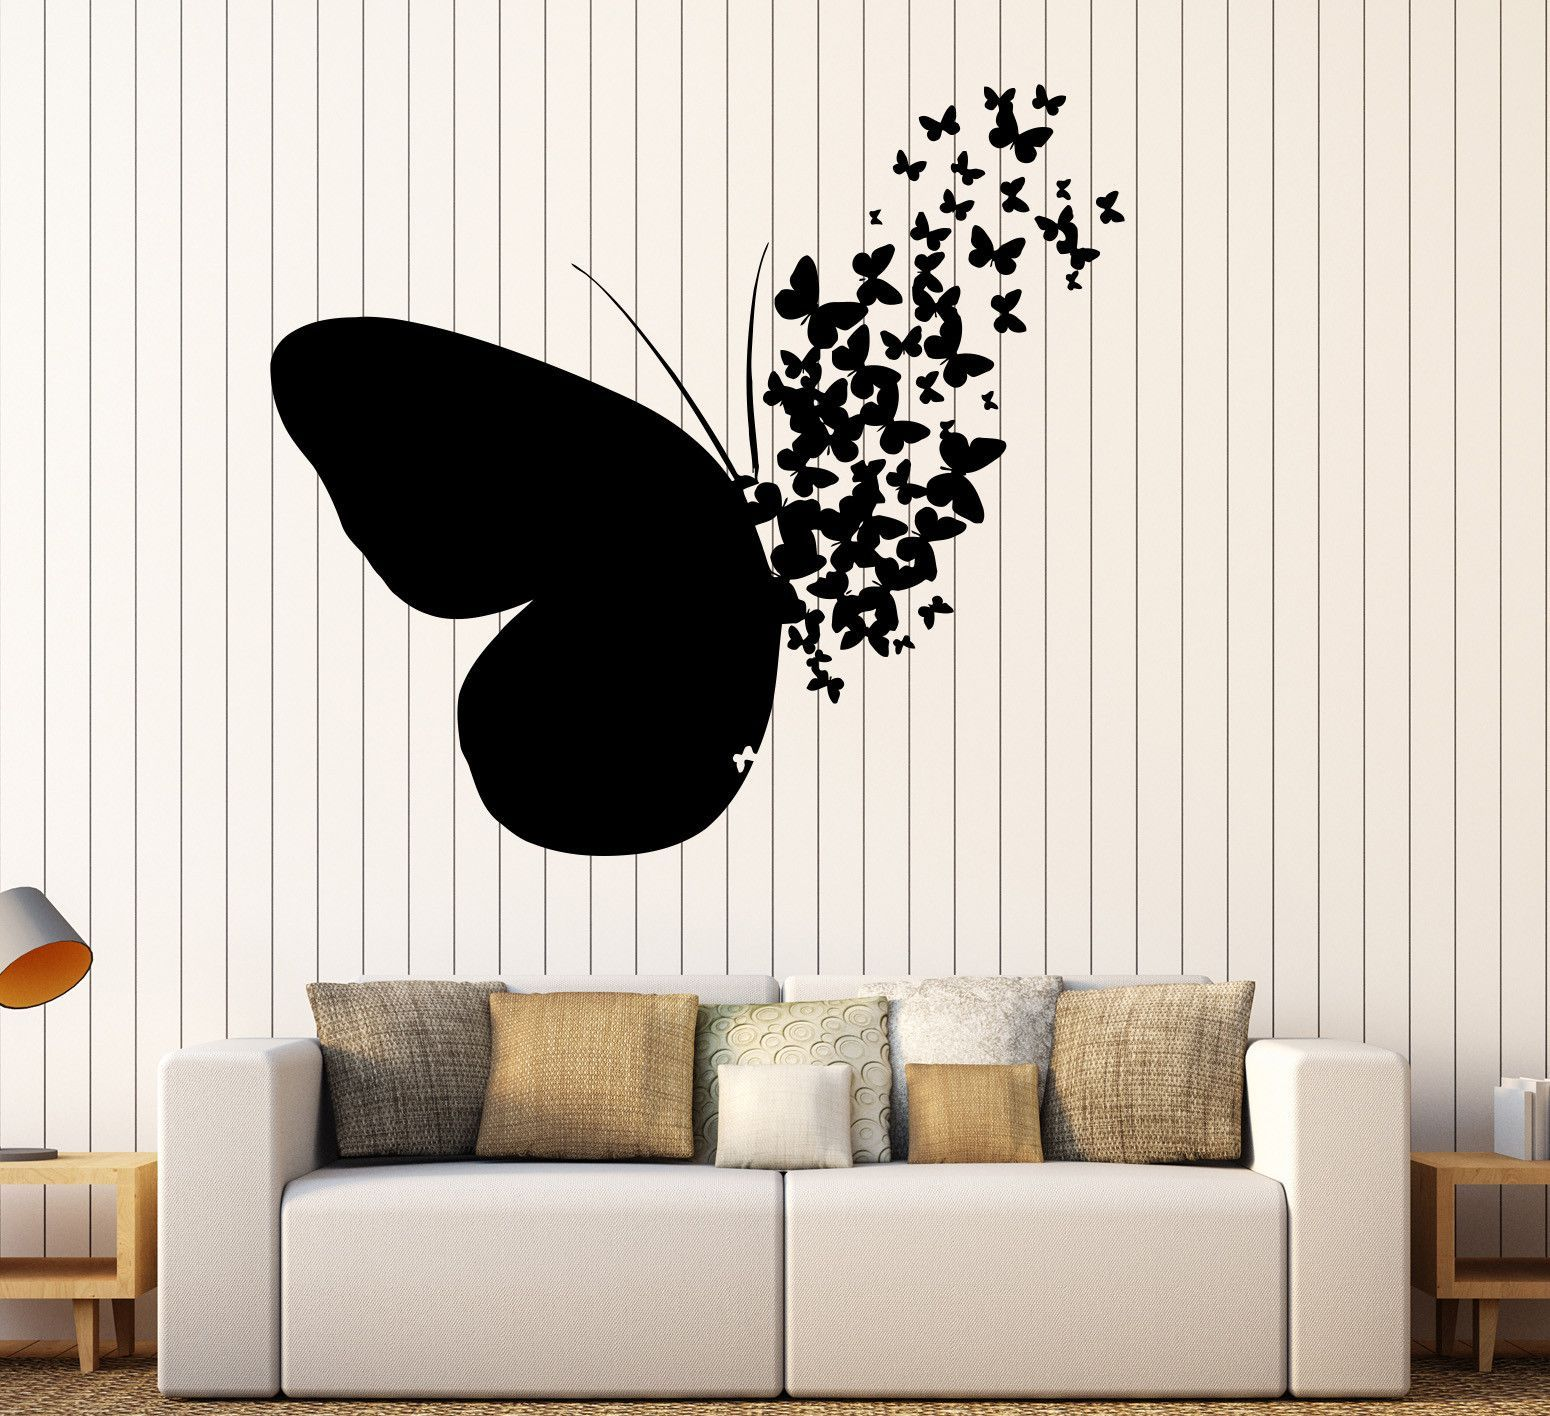 Vinyl Wall Decal Butterfly Home Room Decoration Mural Stickers Unique Gift 395ig Butterfly Wall Decor Butterfly Wall Decals Wall Stickers Home Decor